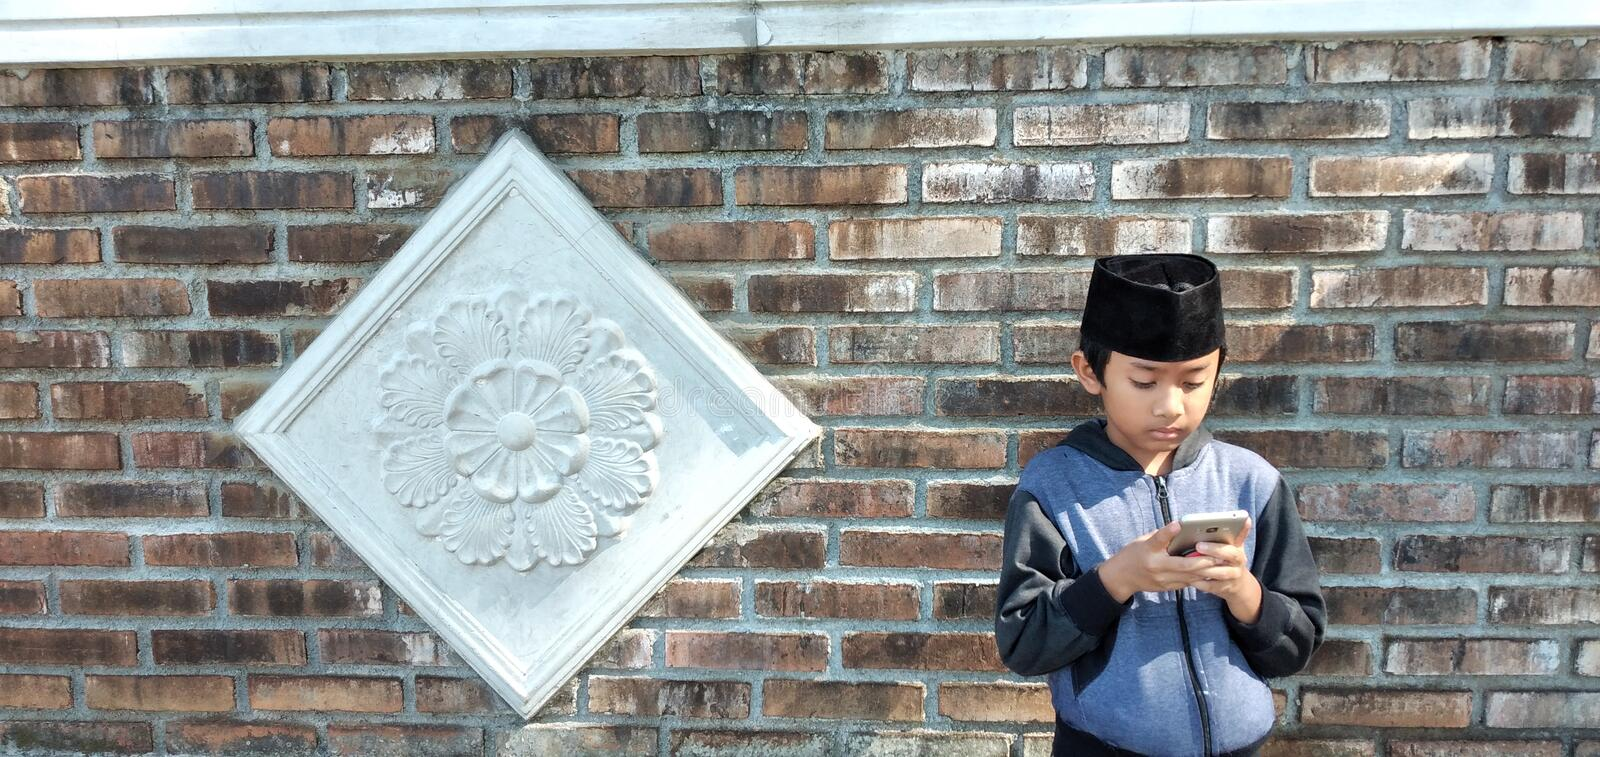 Indonesian boys play mobile phones on the home page. royalty free stock image